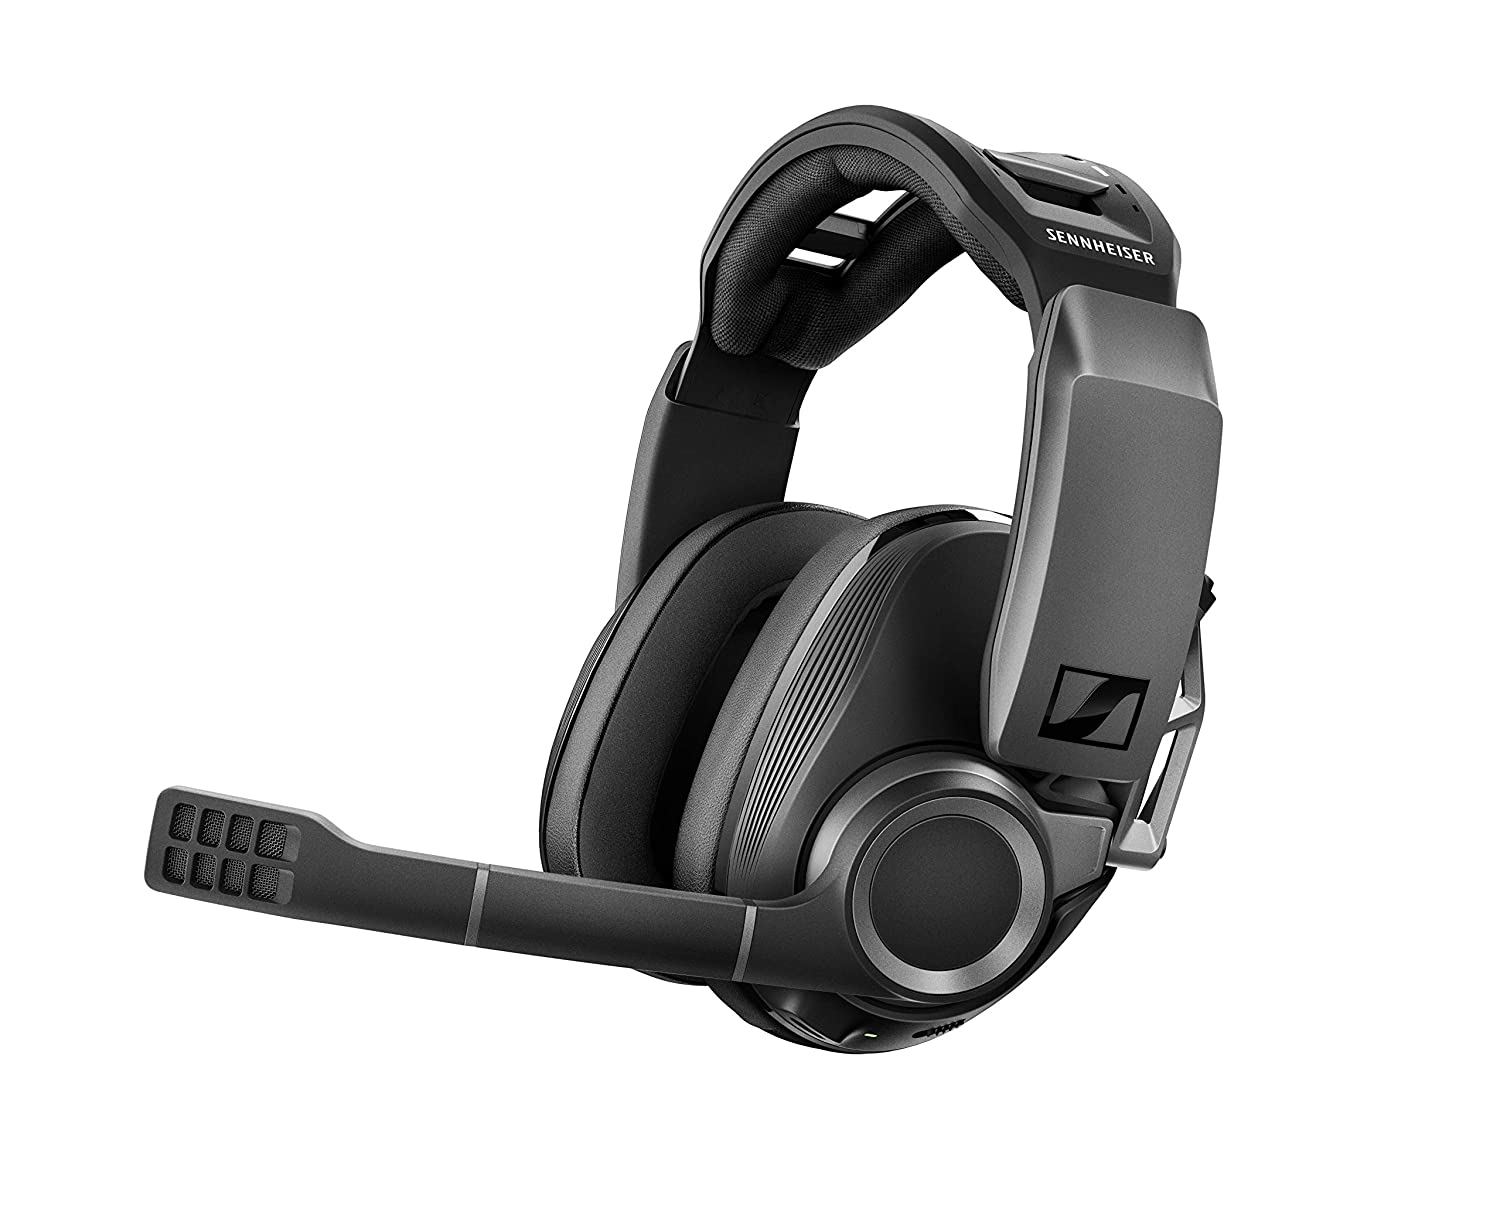 SENNHEISER GSP 670 Wireless gaming headset